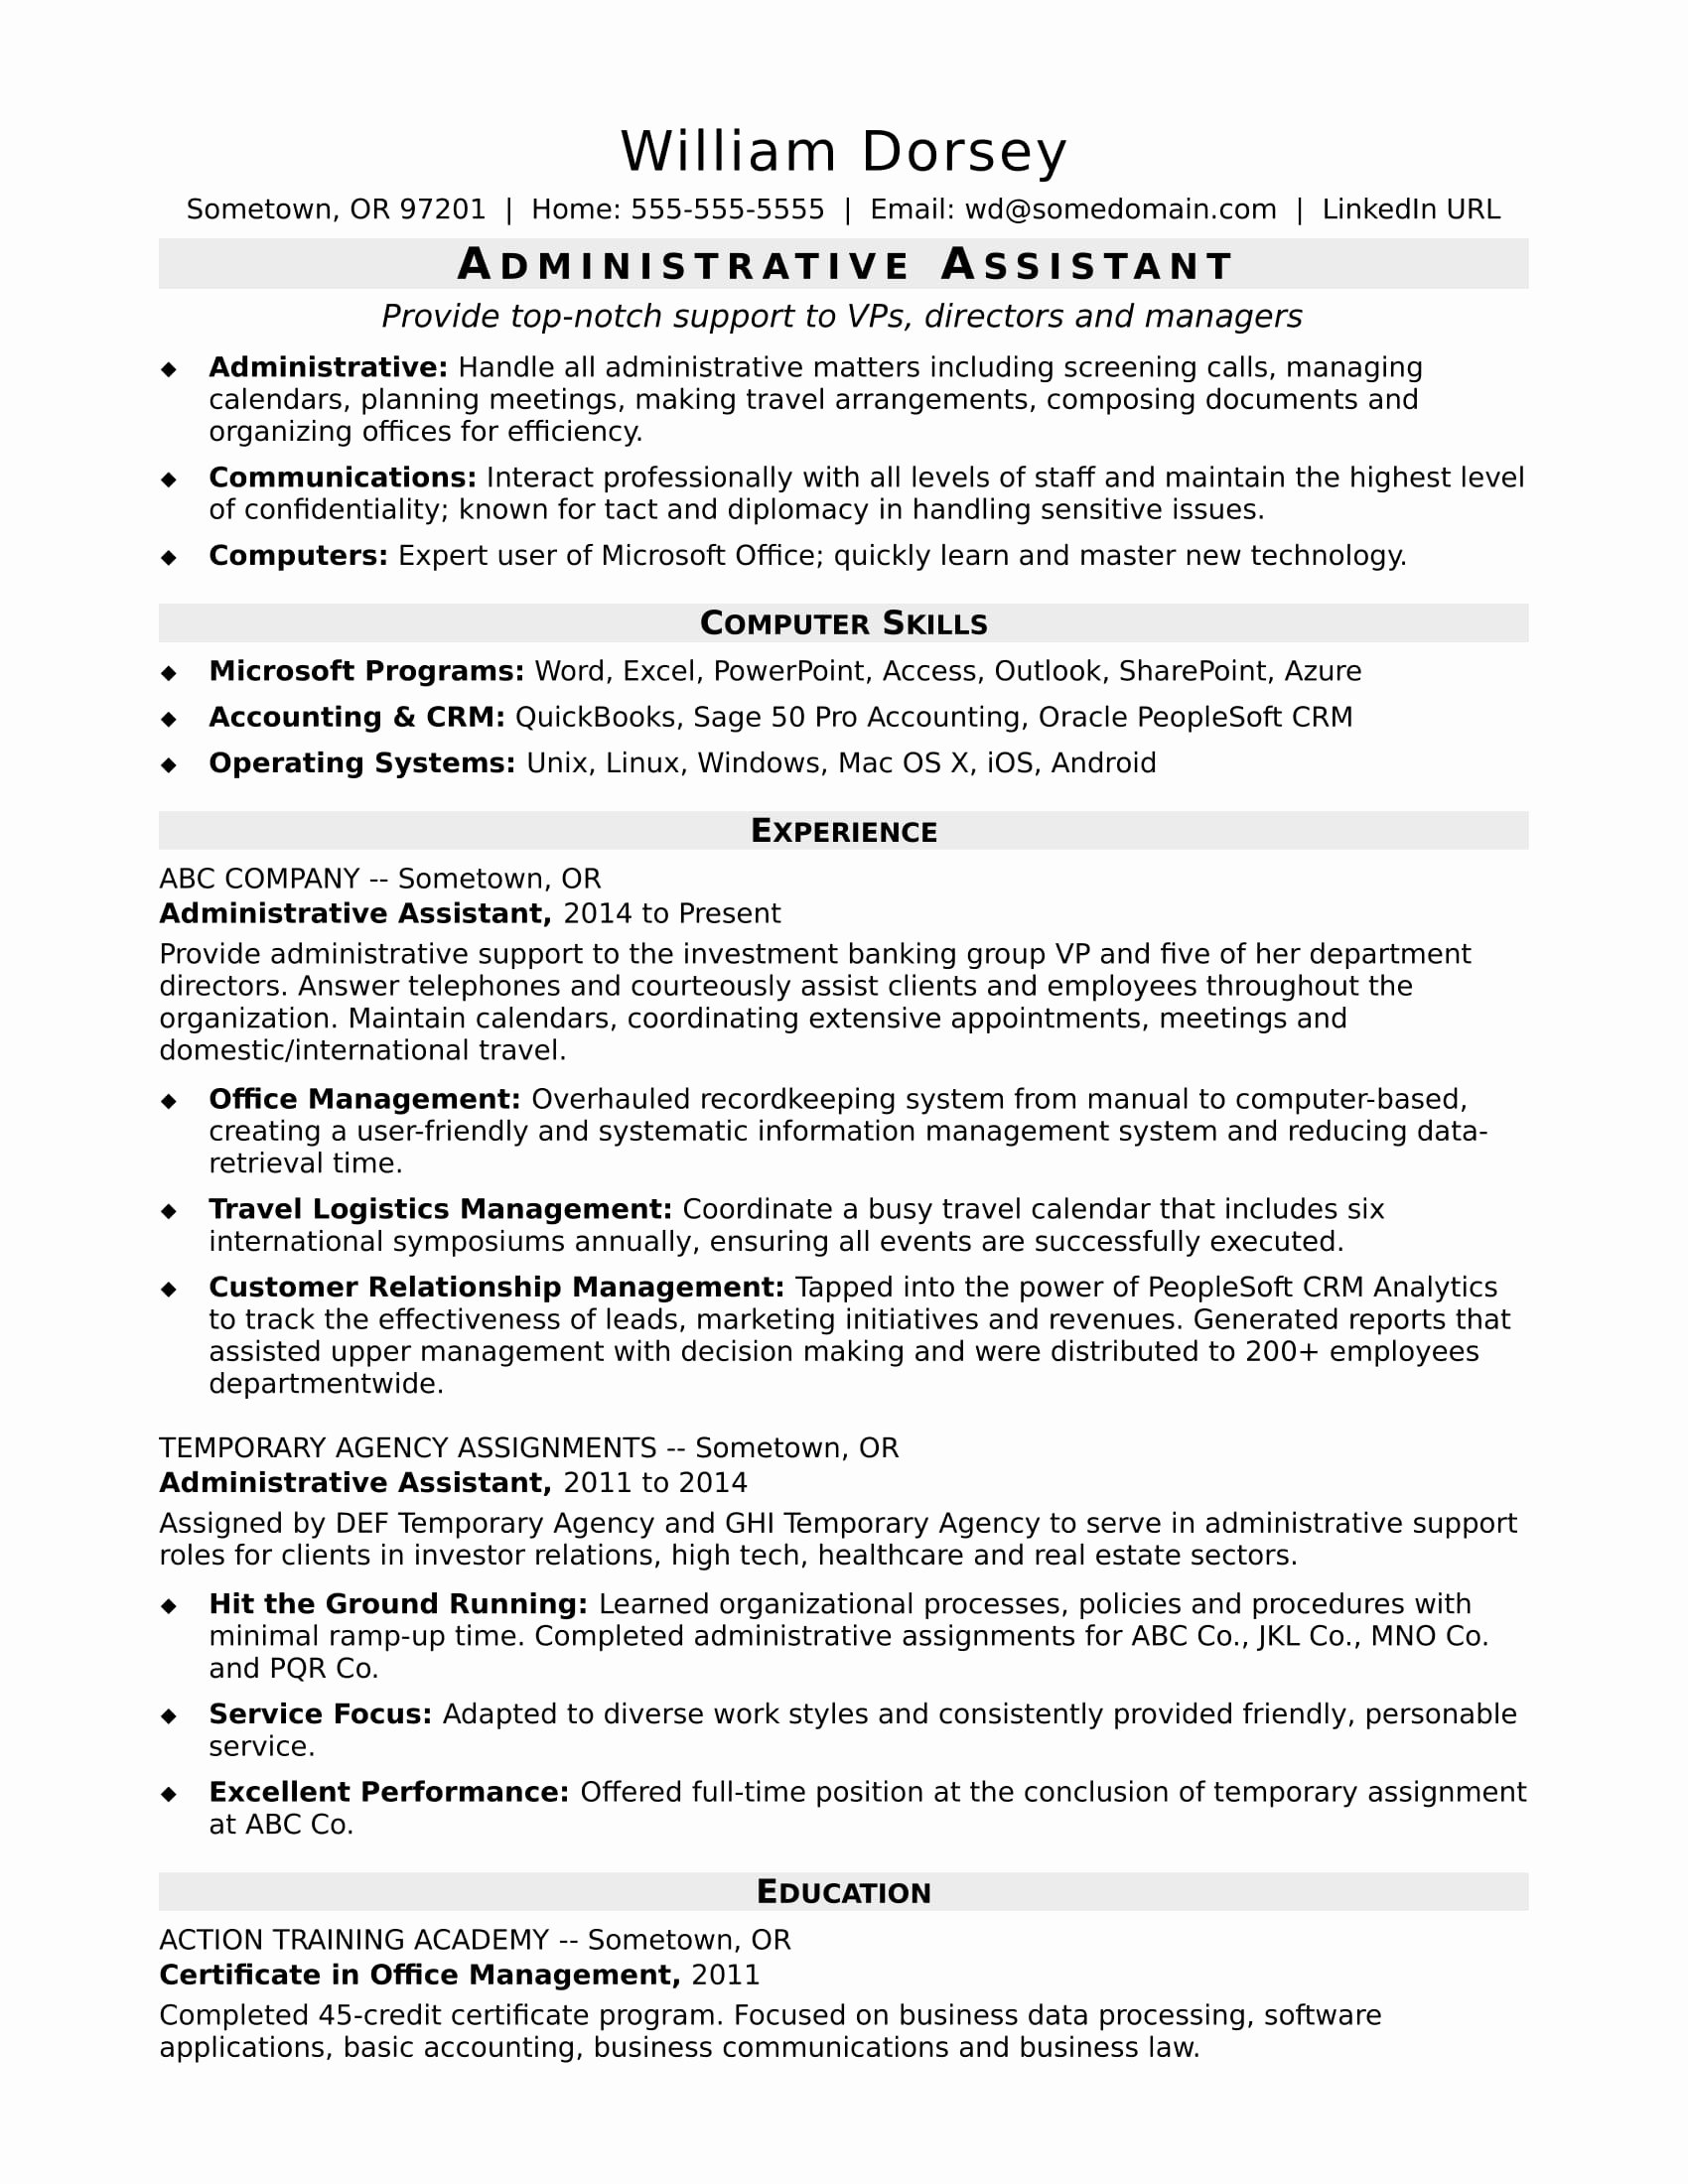 Office assistant Resume Template New Midlevel Administrative assistant Resume Sample